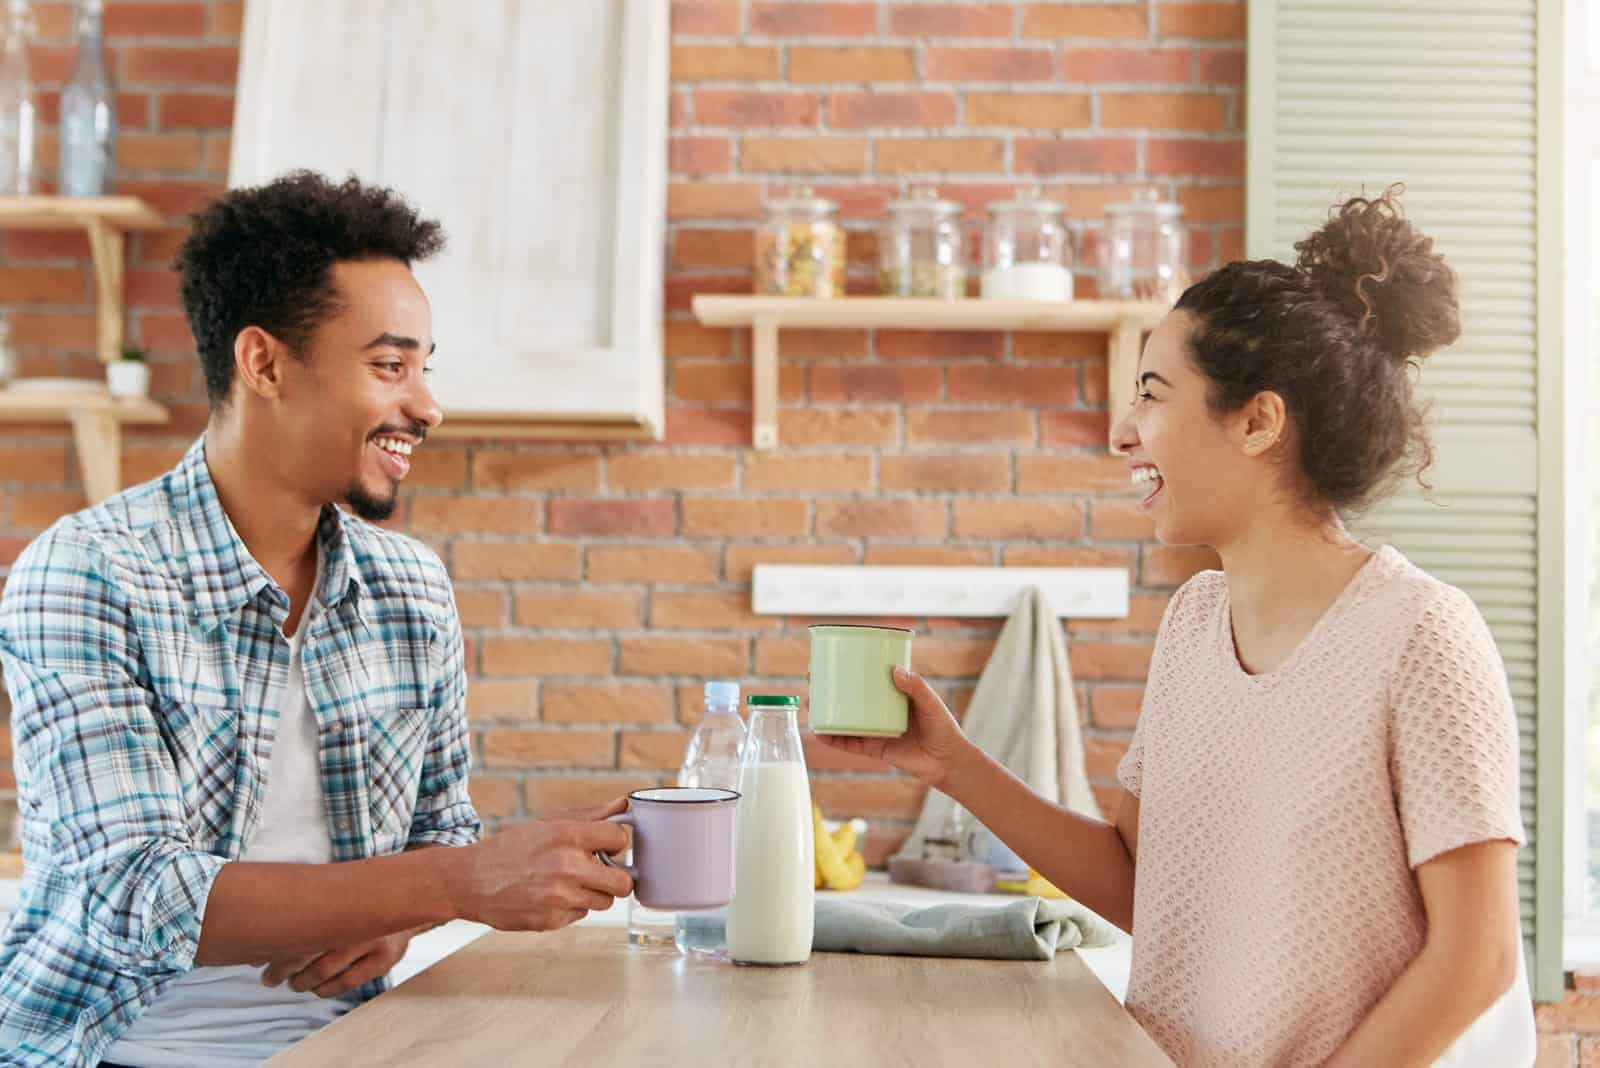 a smiling couple talking in the kitchen over breakfast